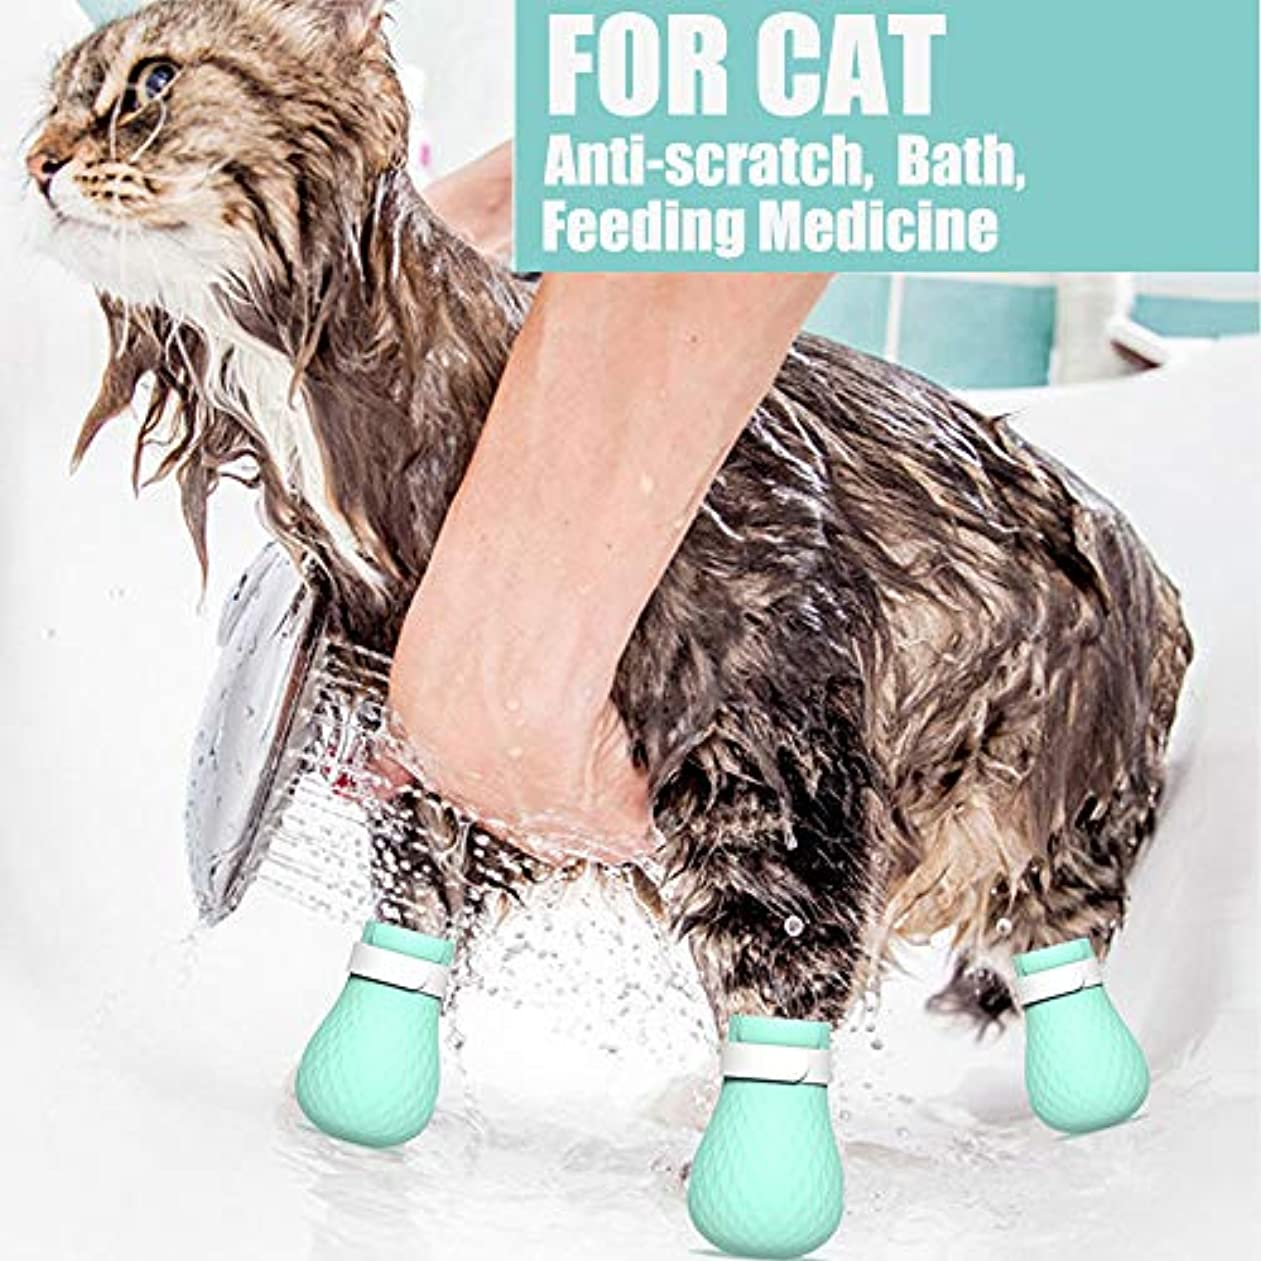 鰐砦ゲート4 PCS Anti-Scratch Cat Foot Shoes for Home Bathing, Shaving Checking Treatment (GREEN)